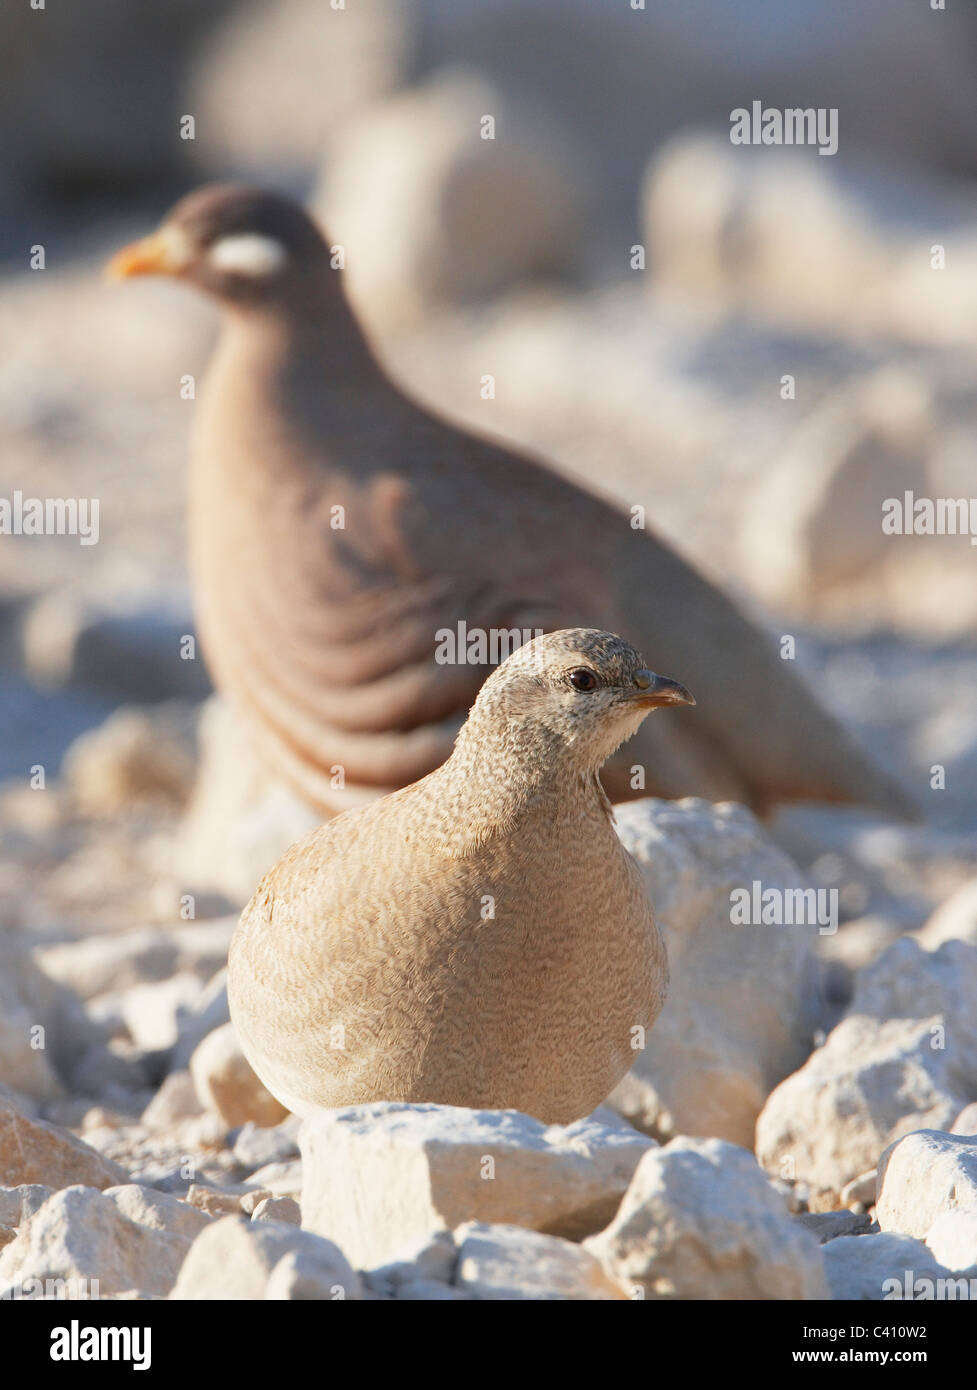 Sand Partridge (Ammoperdix heyi). Pair on rocky ground with female in foreground. Israel. - Stock Image